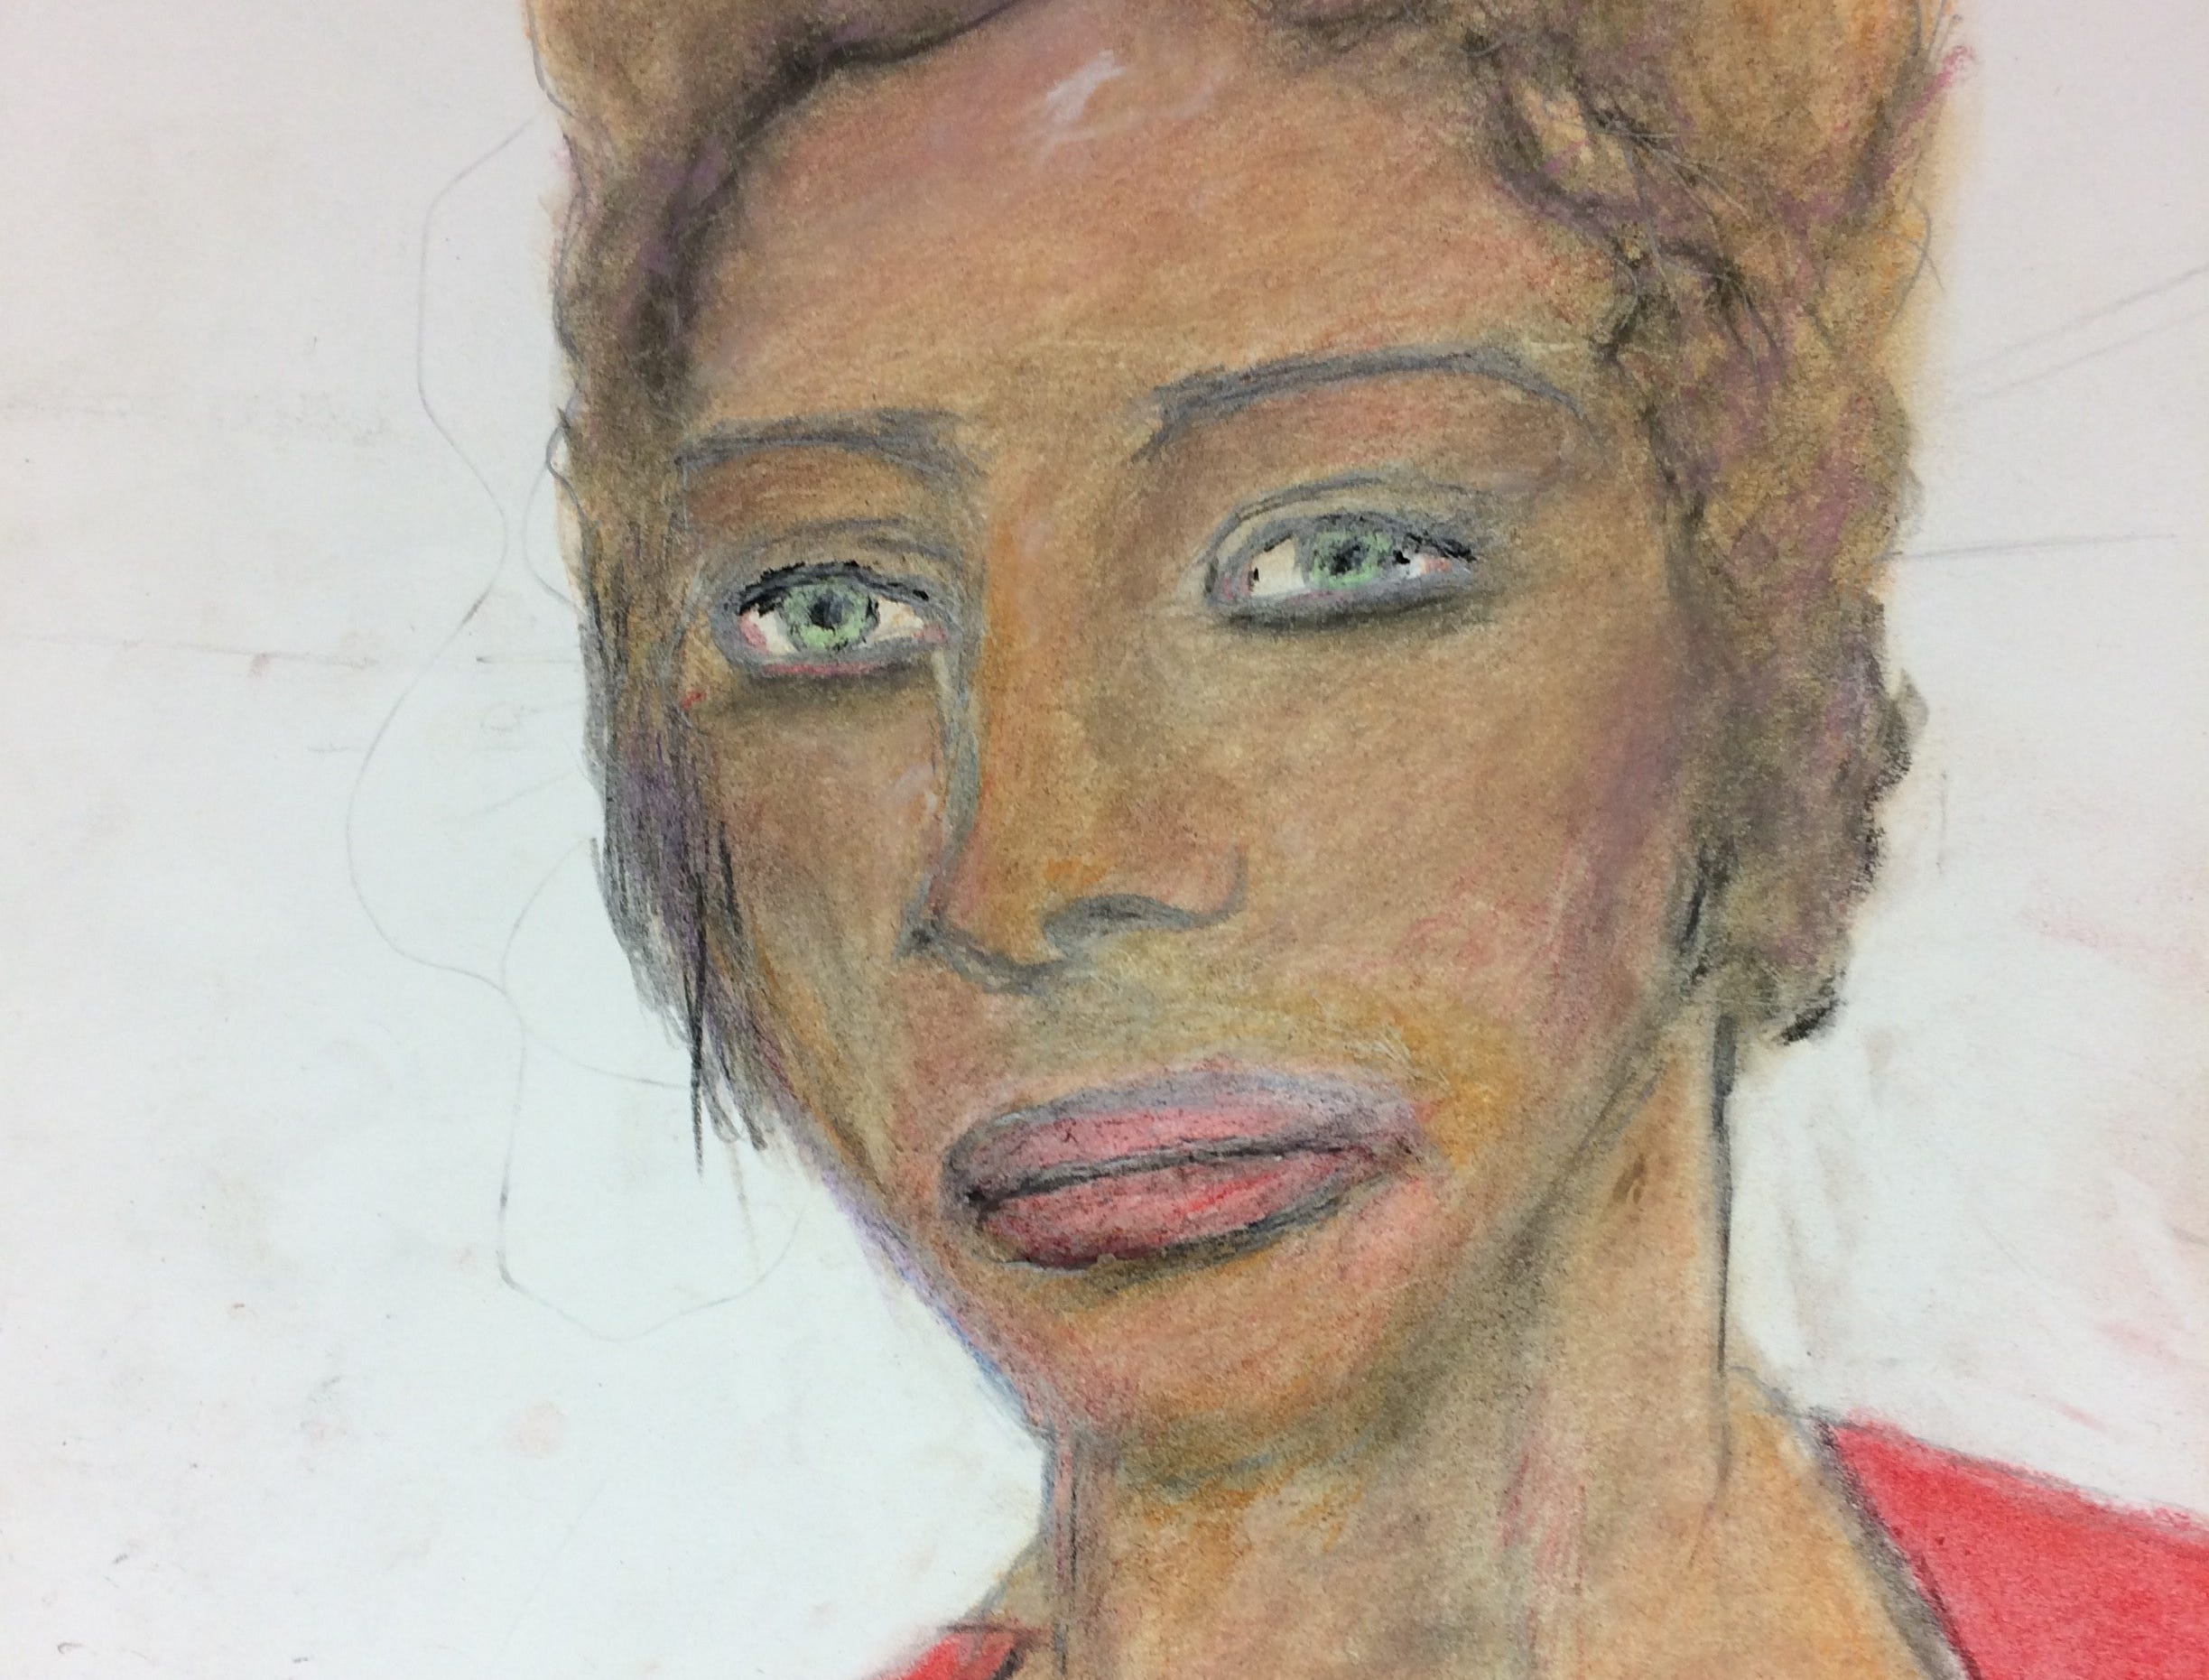 Serial killer Samuel Little drew this woman who he says he murdered in 1988 or 1996. Little told authorities she was a hispanic female who was in her 40s and possibly from in Phoenix, Arizona.